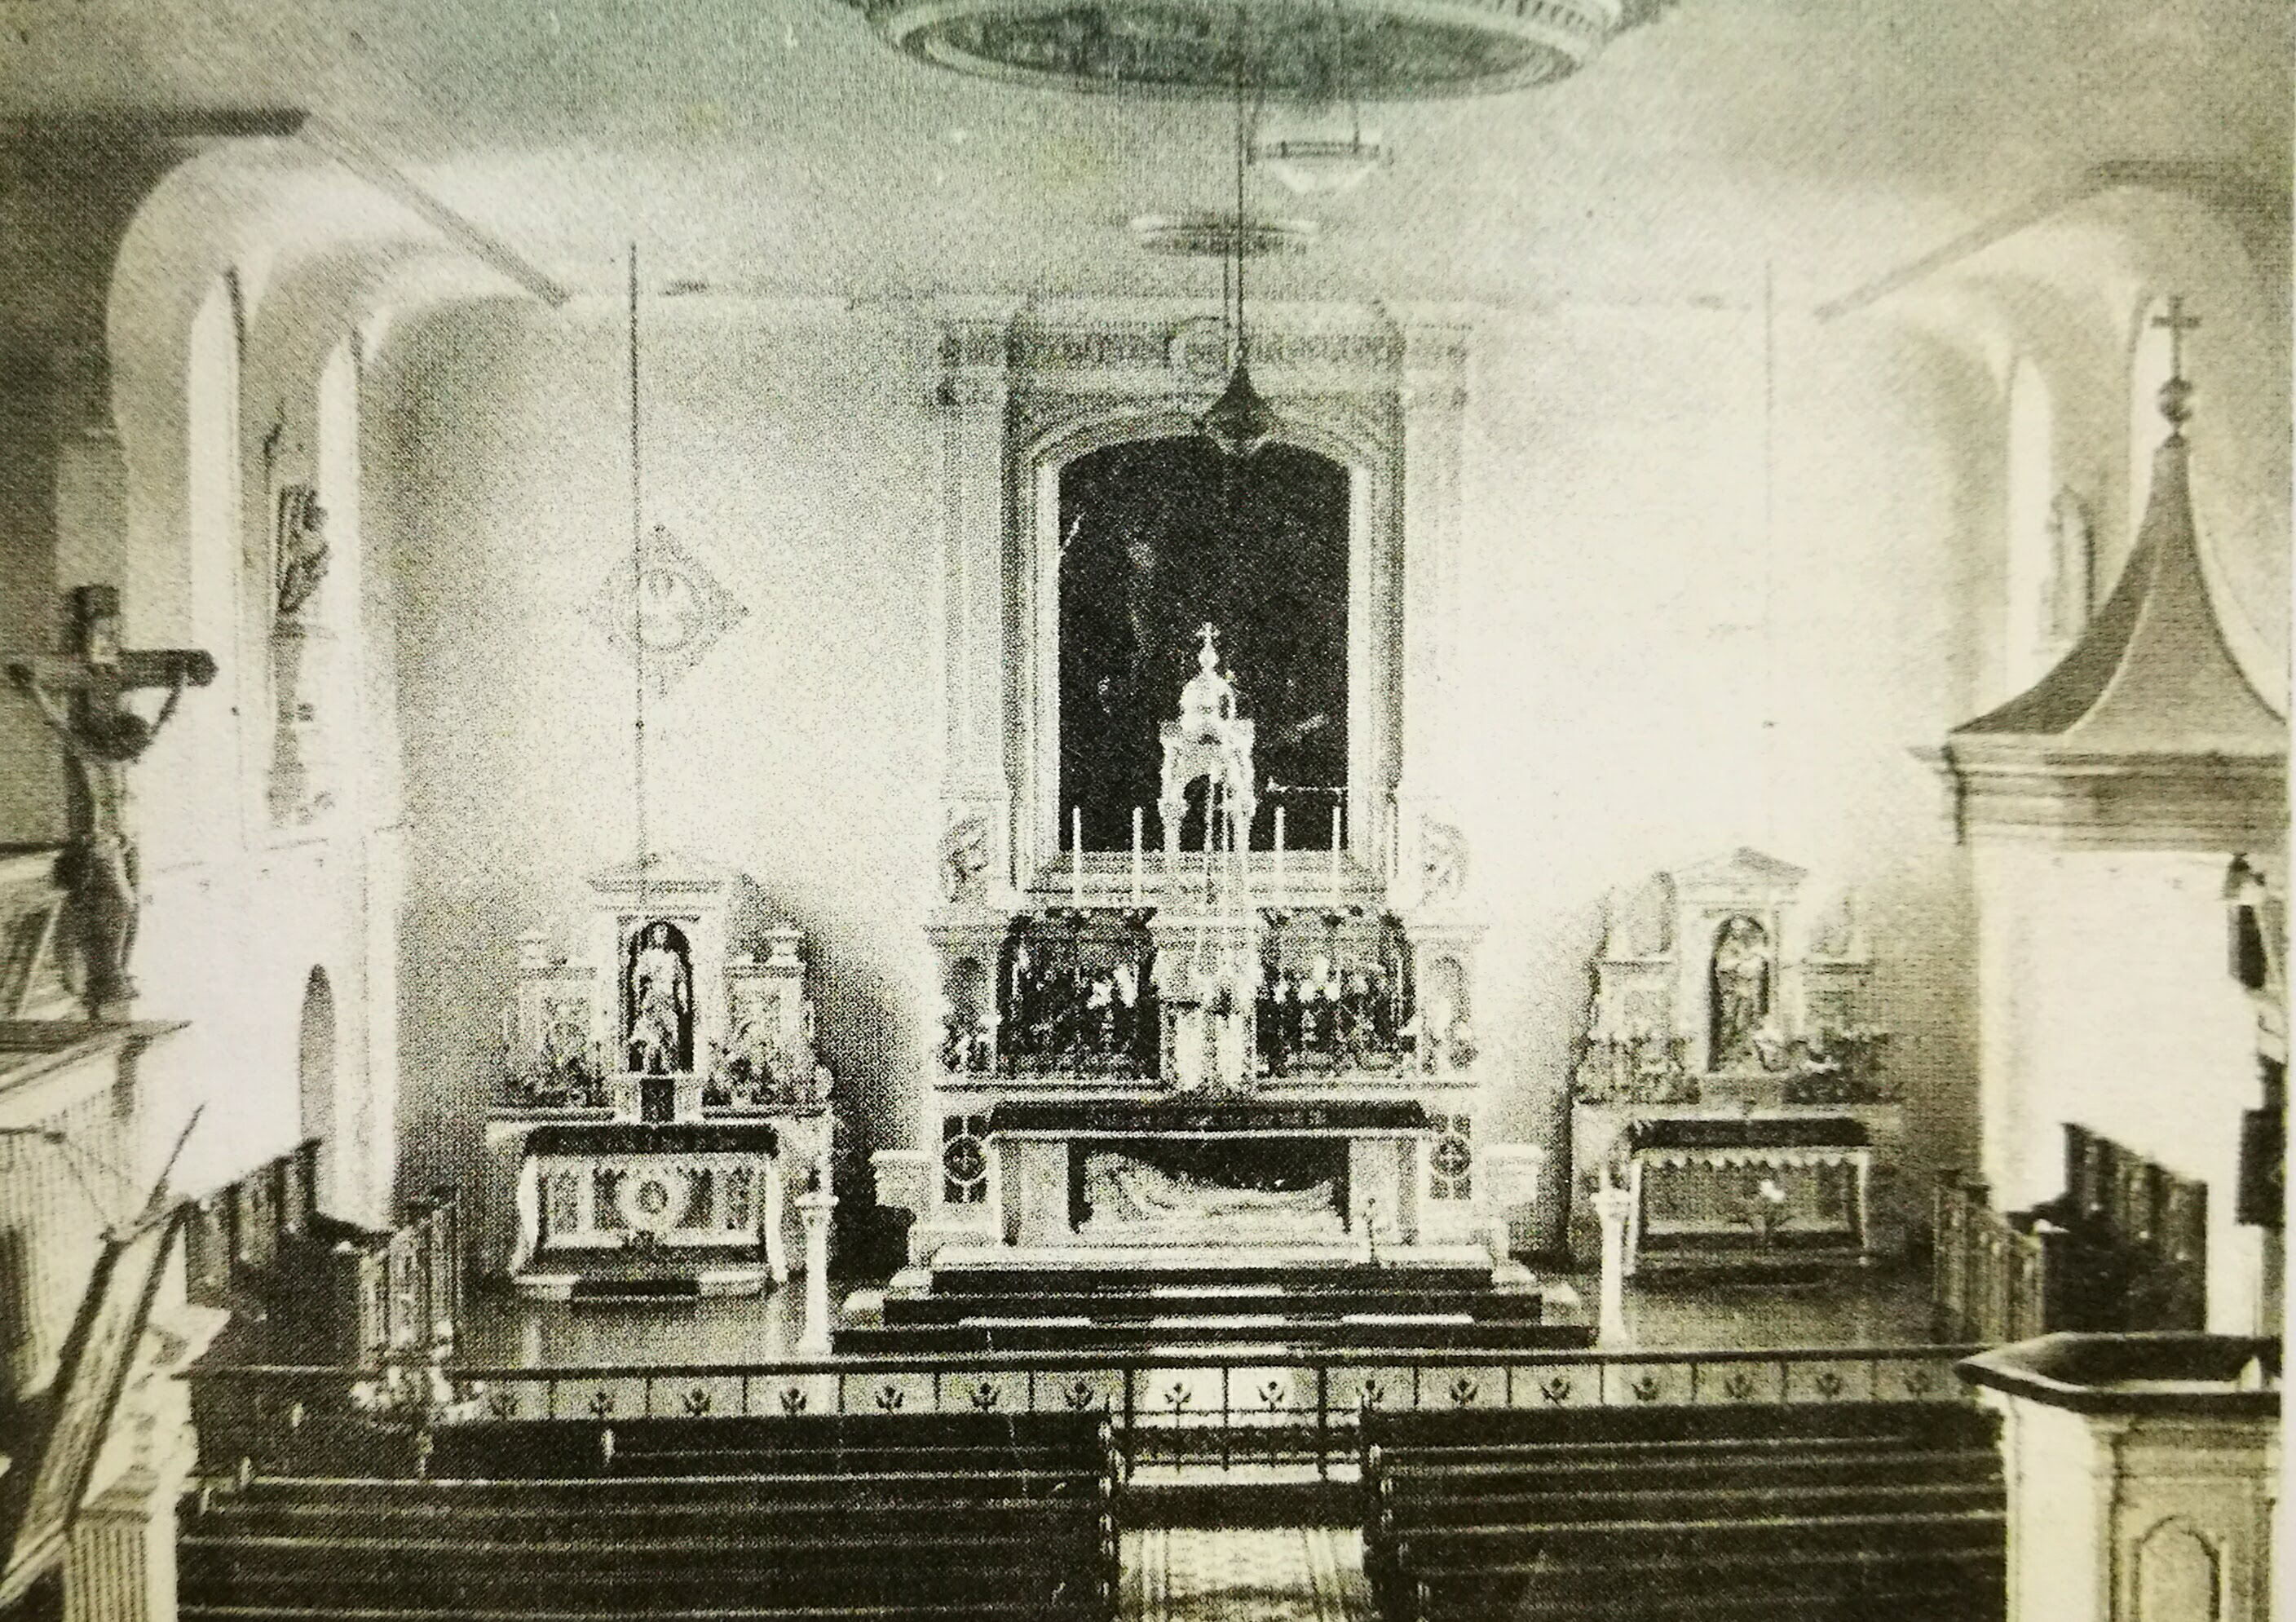 Image source: Walsh, Fr. T., 'In the Tradition of St. Finbarr', (Cork: Guy &Co, 1951).